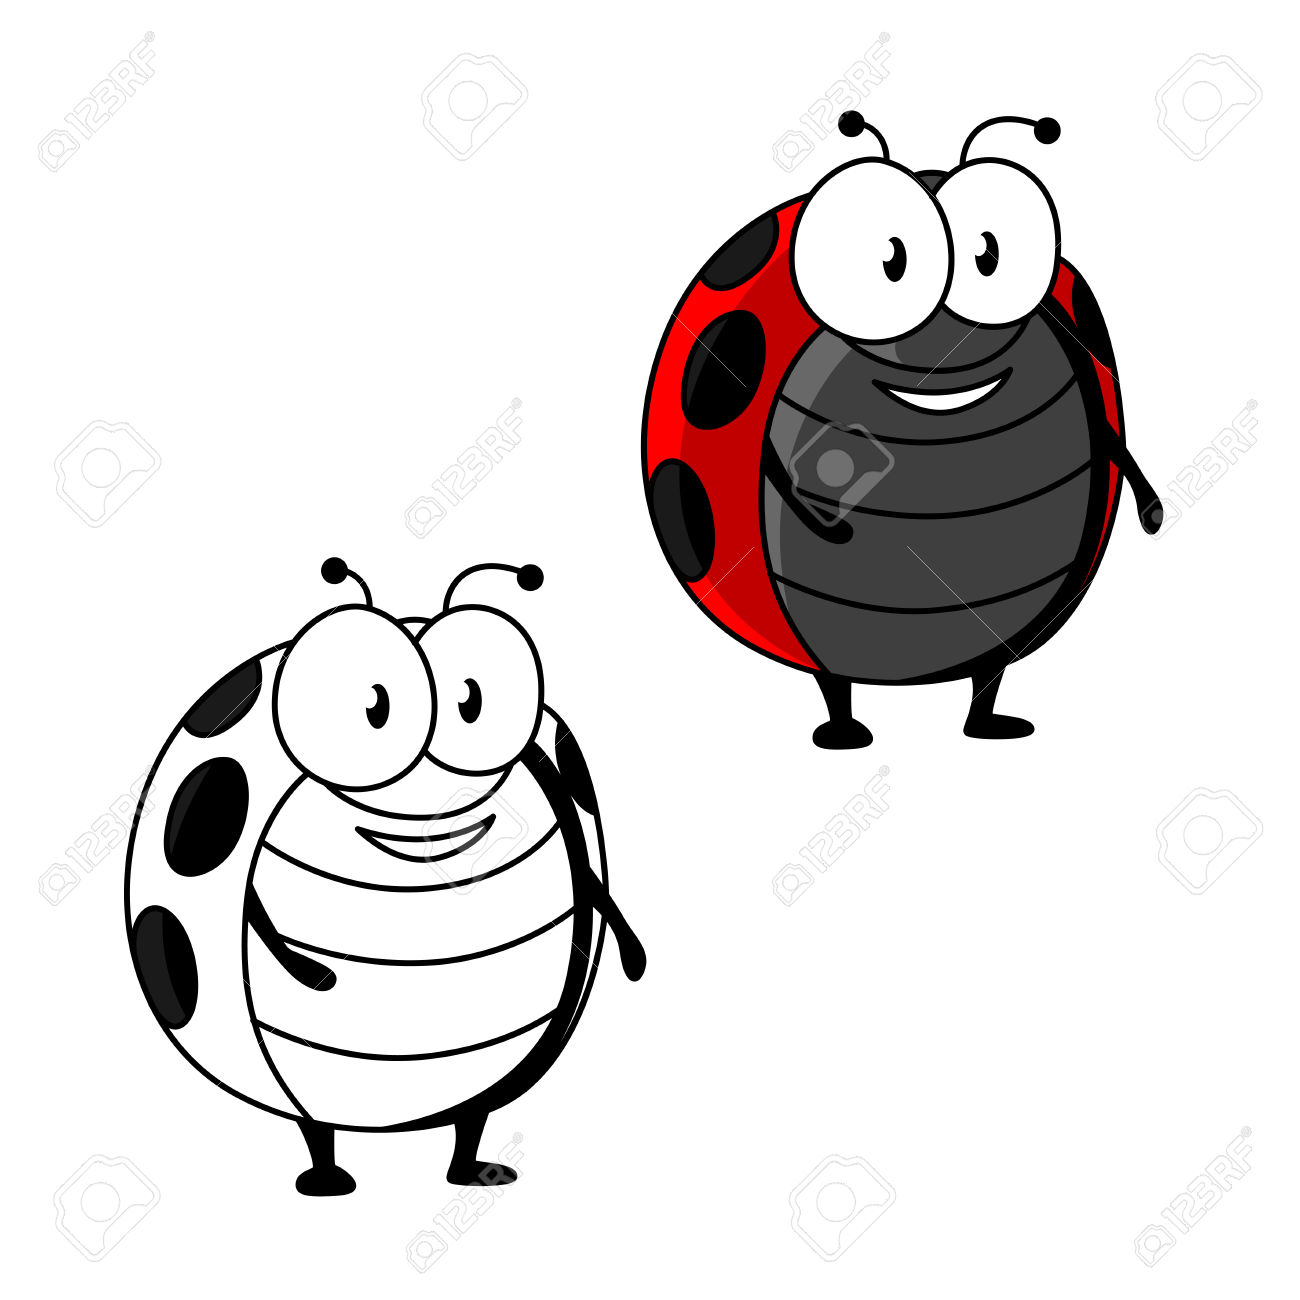 Cartoon Red Ladybird Or Ladybug Insect Character With Black Spots.